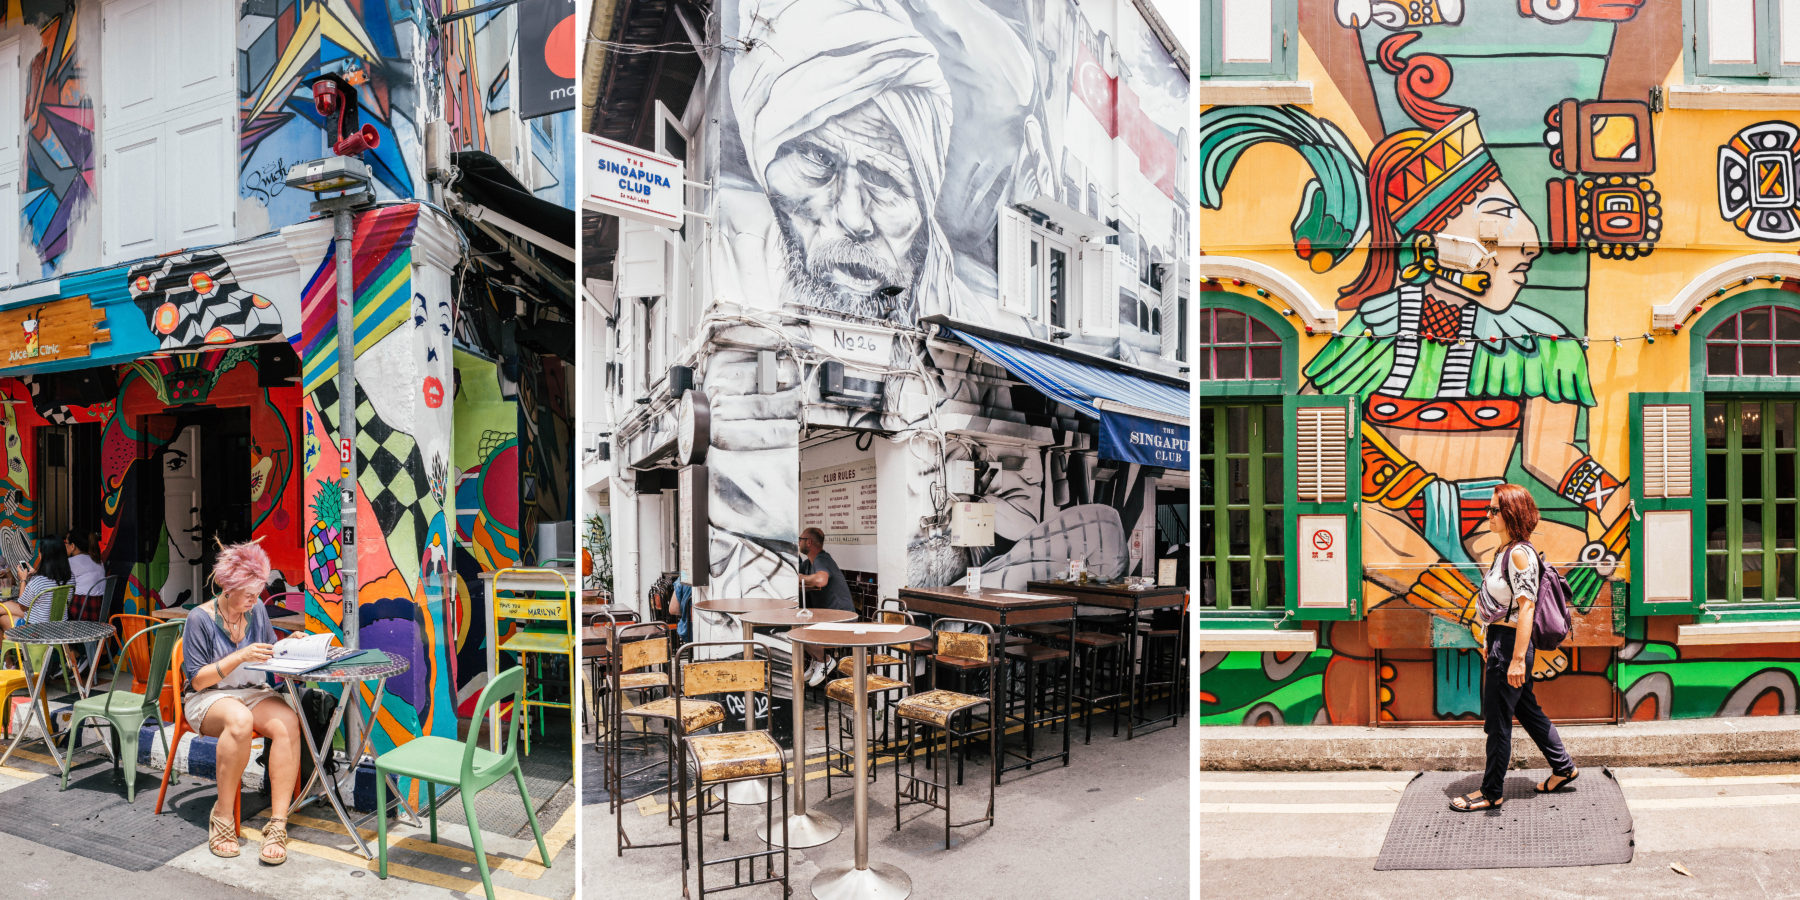 singapore coffee shops haji lane hipster caffeine exploring cafes graffiti colourful street